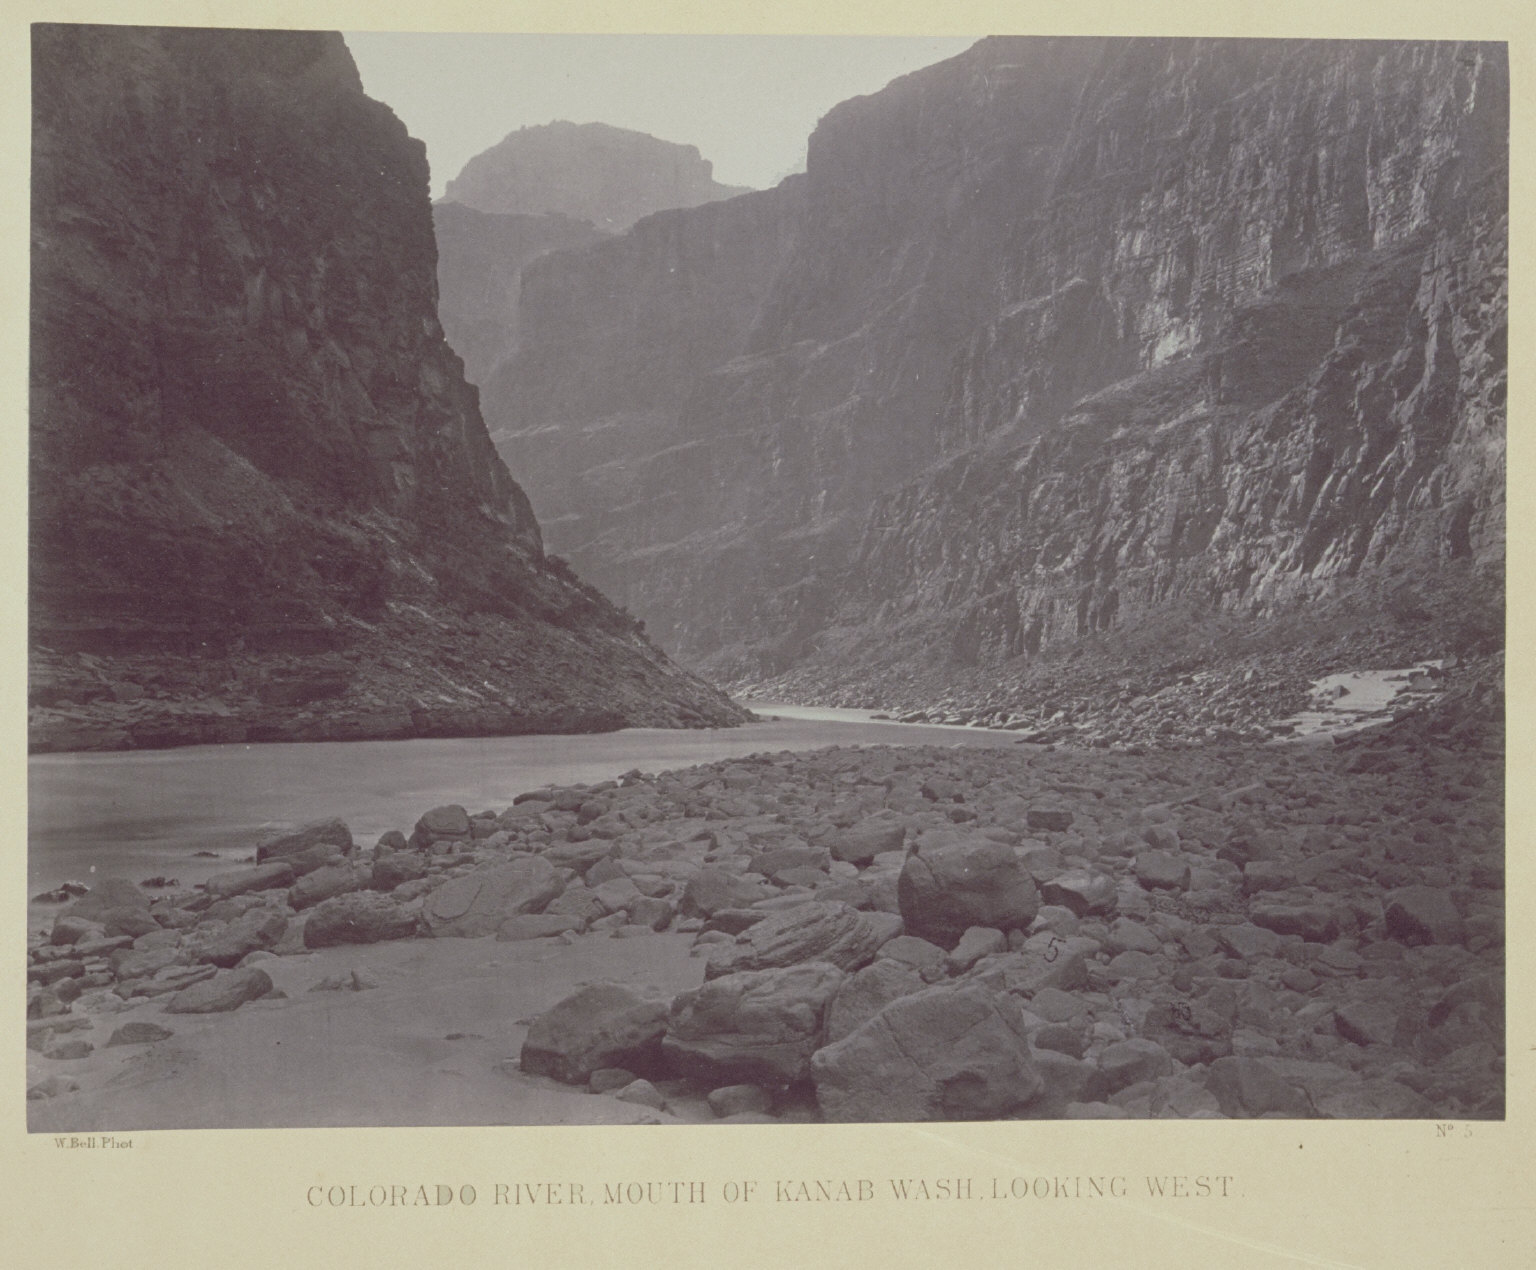 Colorado River, Mouth of Kanab Wash, Looking West.